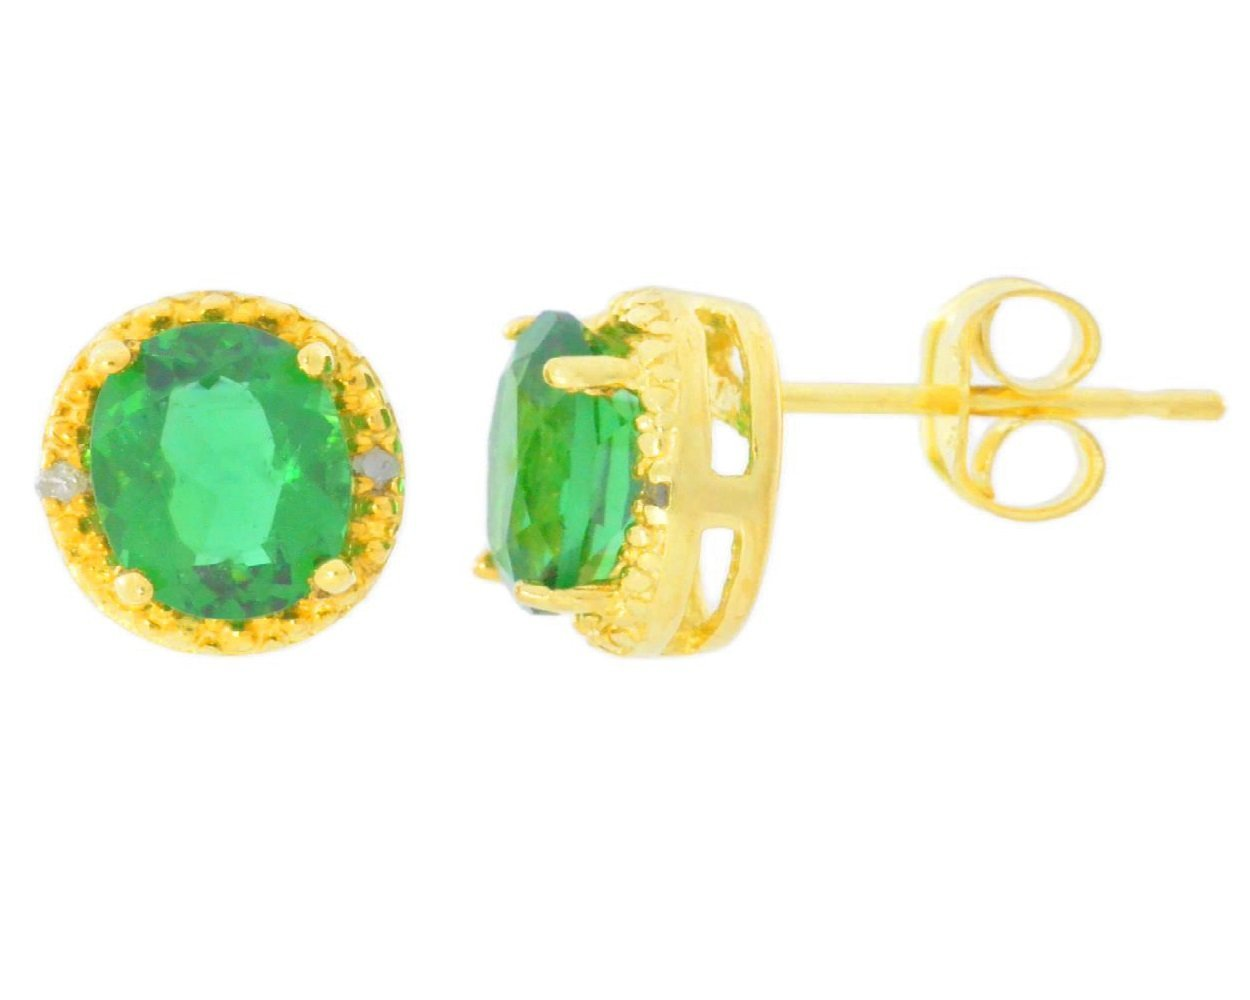 14Kt Yellow Gold Emerald 6mm Round Stud Earrings